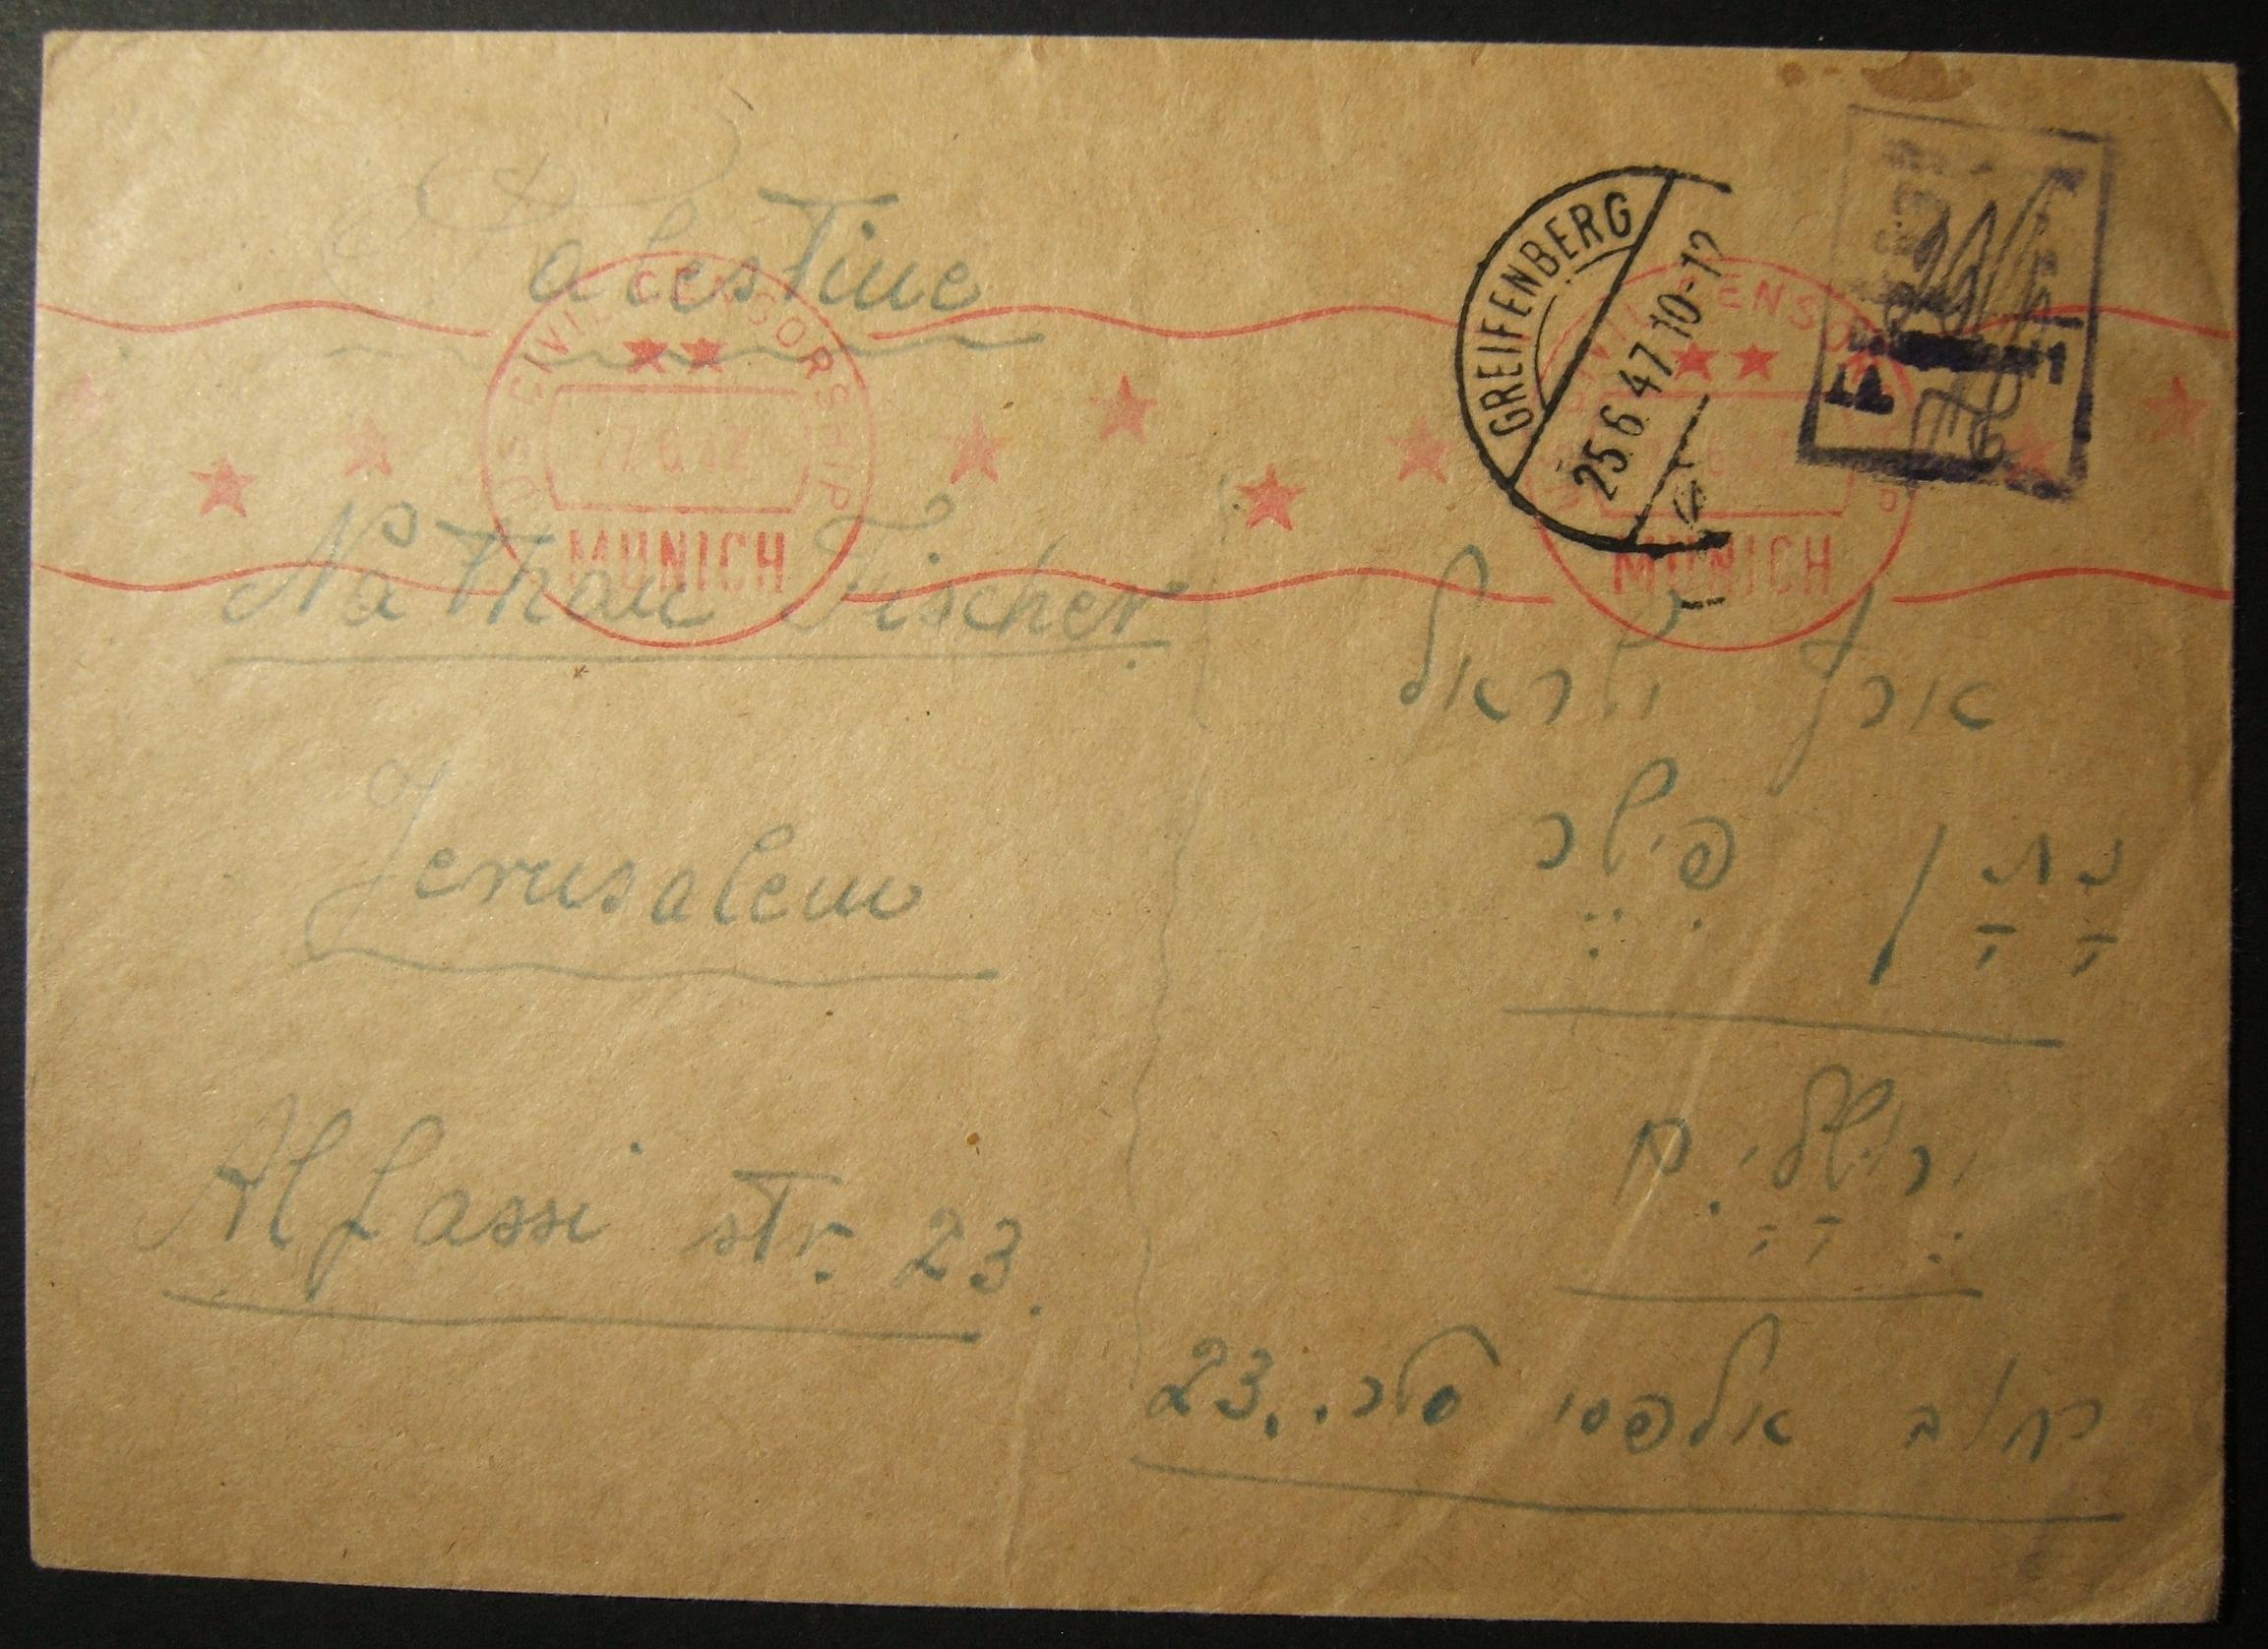 6/1947 Post-WWII/Holocaust stampless mail from Zionist camp GREIFENBERG to JERUSALEM